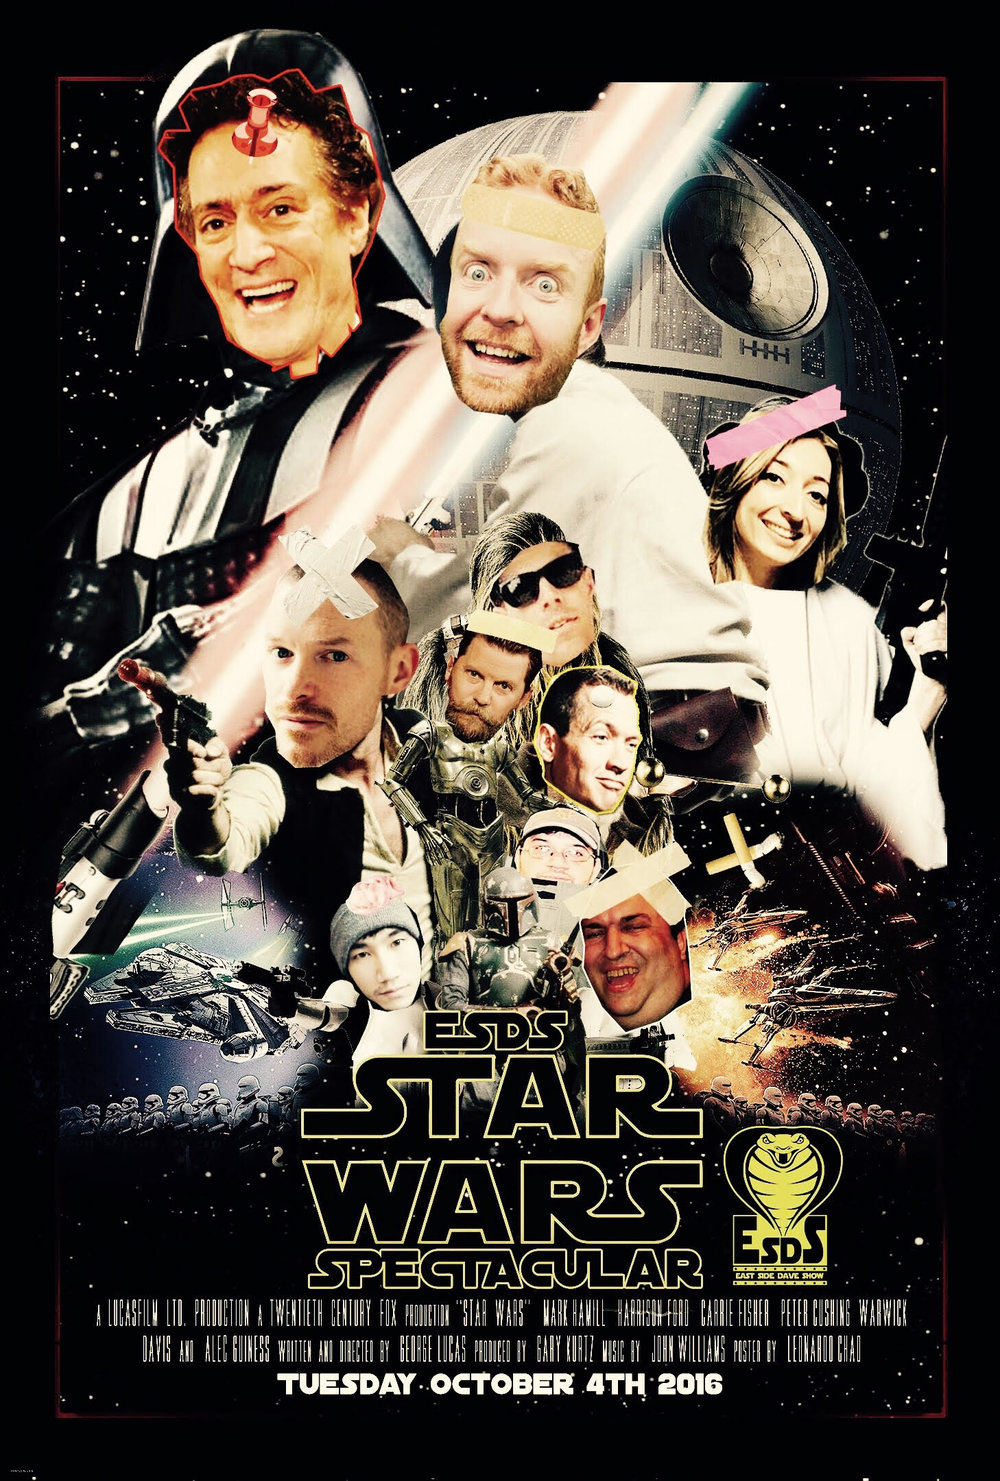 ESDS Star Wars Spectacular.jpg